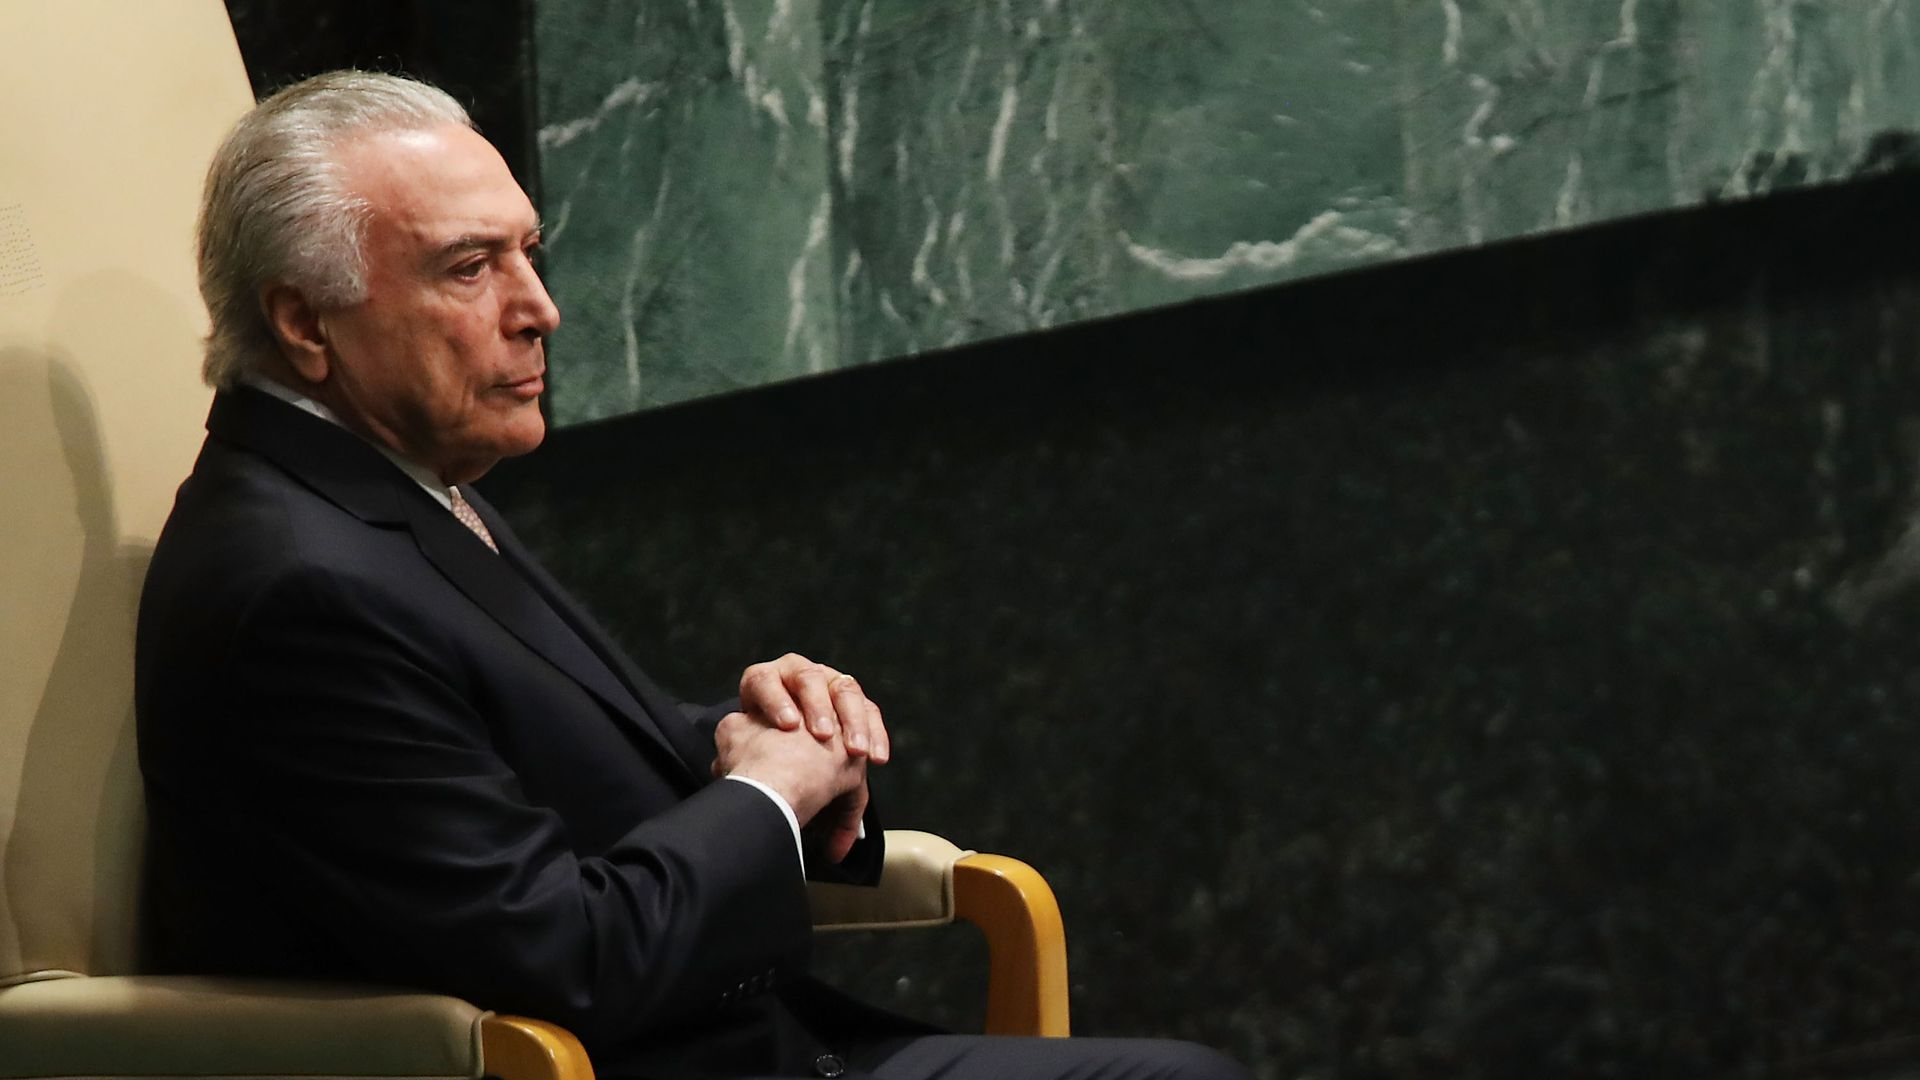 Brazilian President Michel Temer. Photo: Spencer Platt/Getty Images